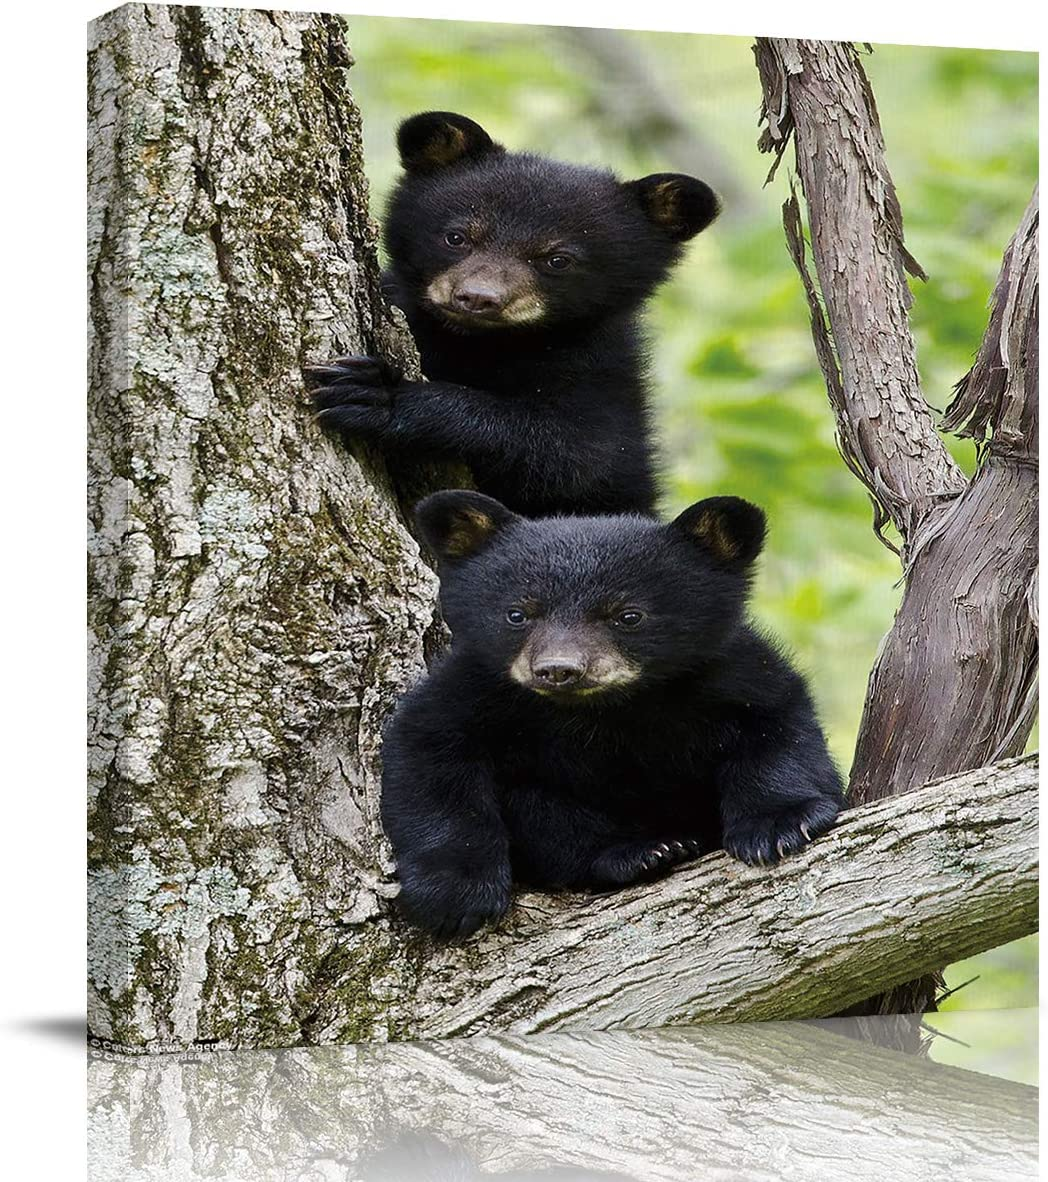 T&H XHome Wall Art Paintings on Canvas Print Cute 3D Little Black Bear Animal Office Artwork Home Decoration Living Room Bedroom Bathroom Giclee Walls Decor,Wood Framed Ready to Hang 20x20in